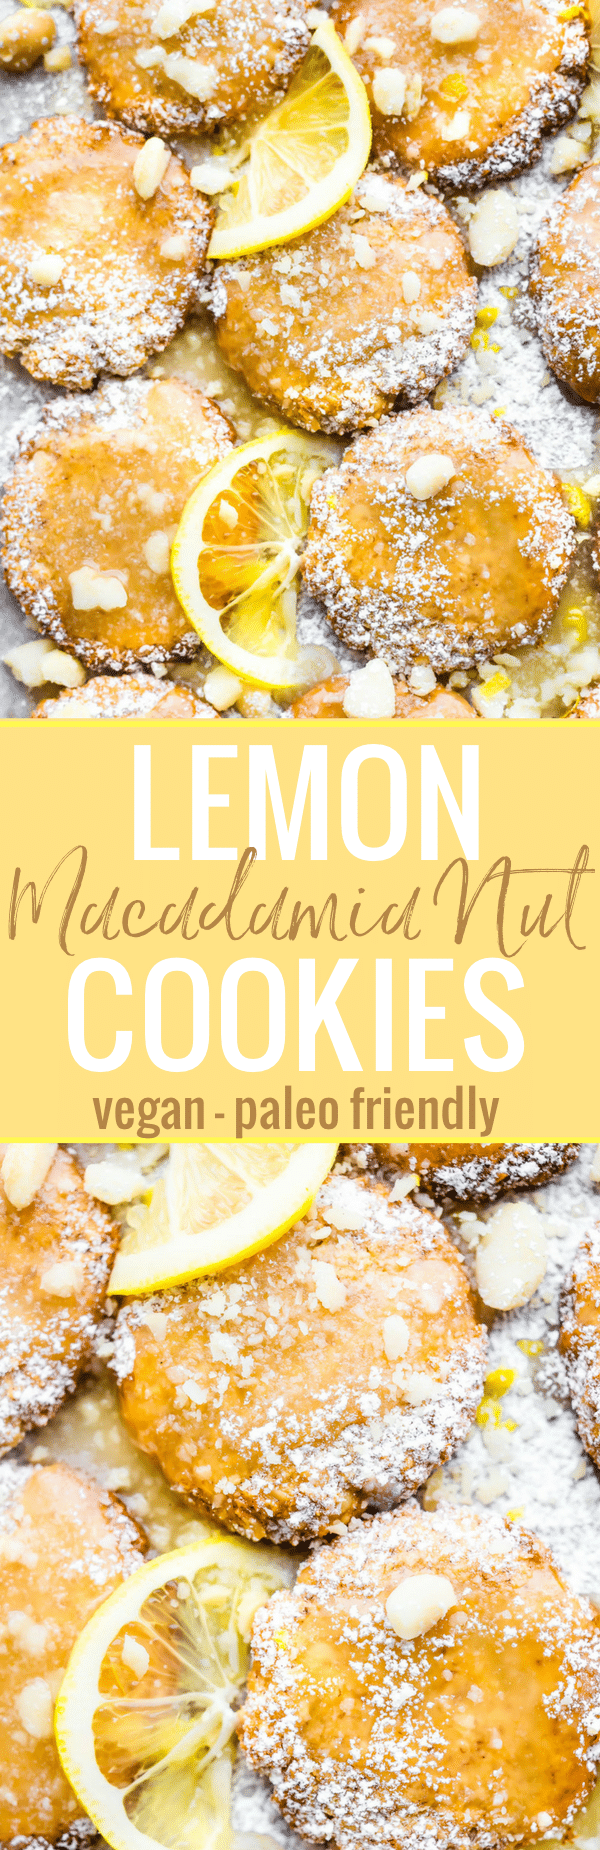 Zesty Lemon Macadamia Nut Cookies have a wonderful flavor combination of coconut, lemon, and buttery macadamia nut! Chewy in the middle. Crispy outside and topped with a simple lemon glaze! So good and easy to make! Paleo friendly and Vegan. www.cottercrunch.com